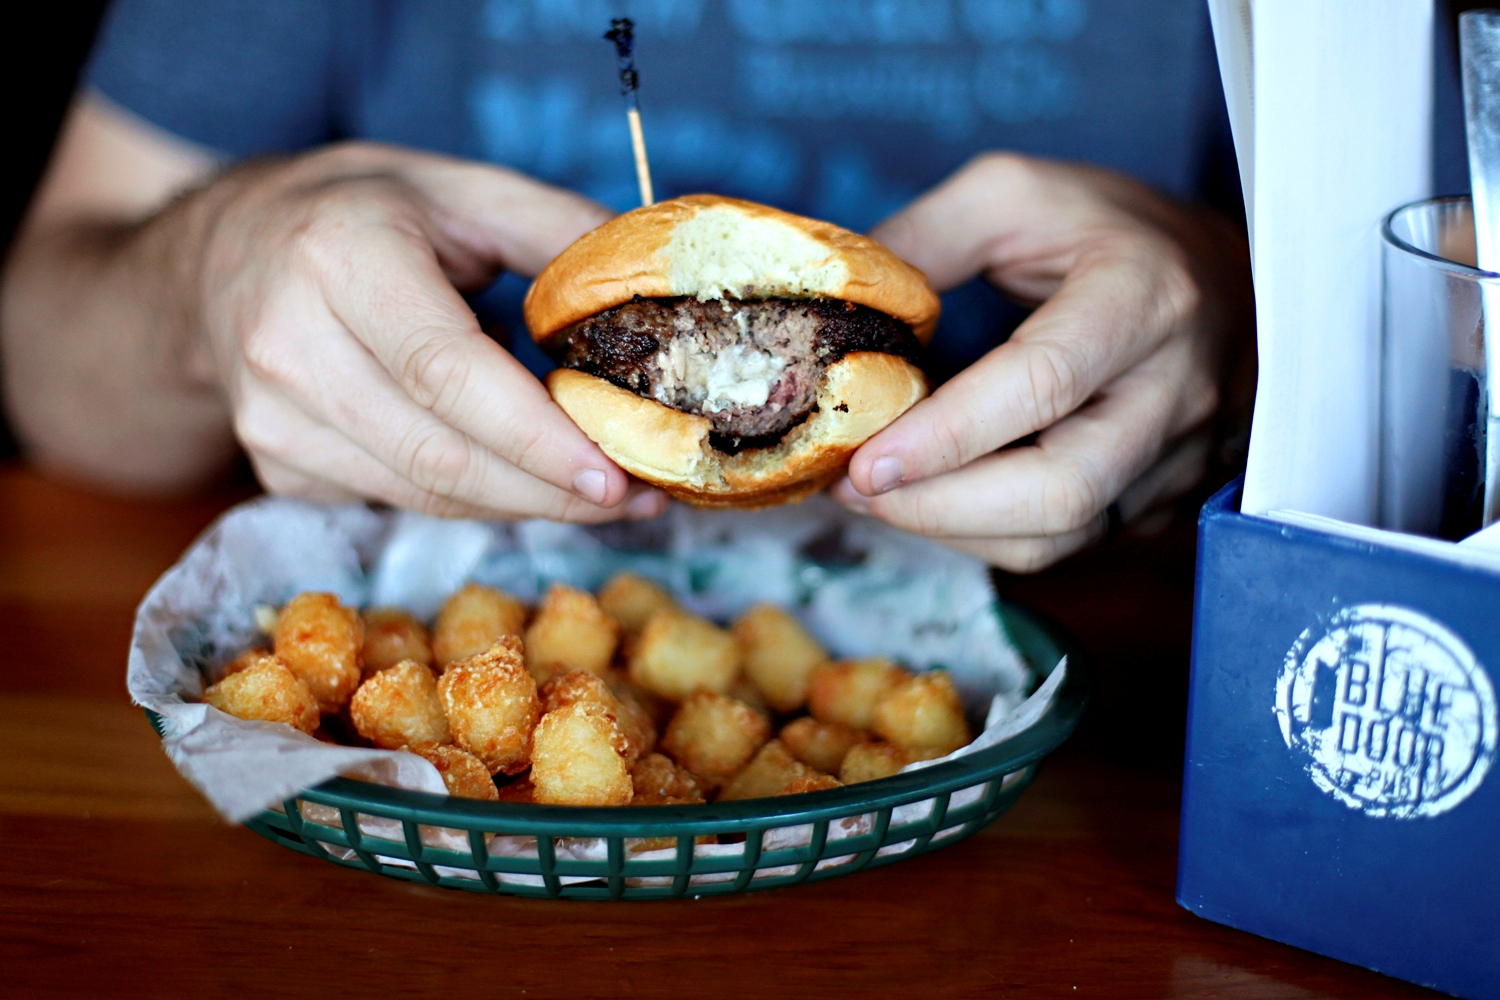 A person holding a burger with a bite out of it, cheese is oozing out of the center